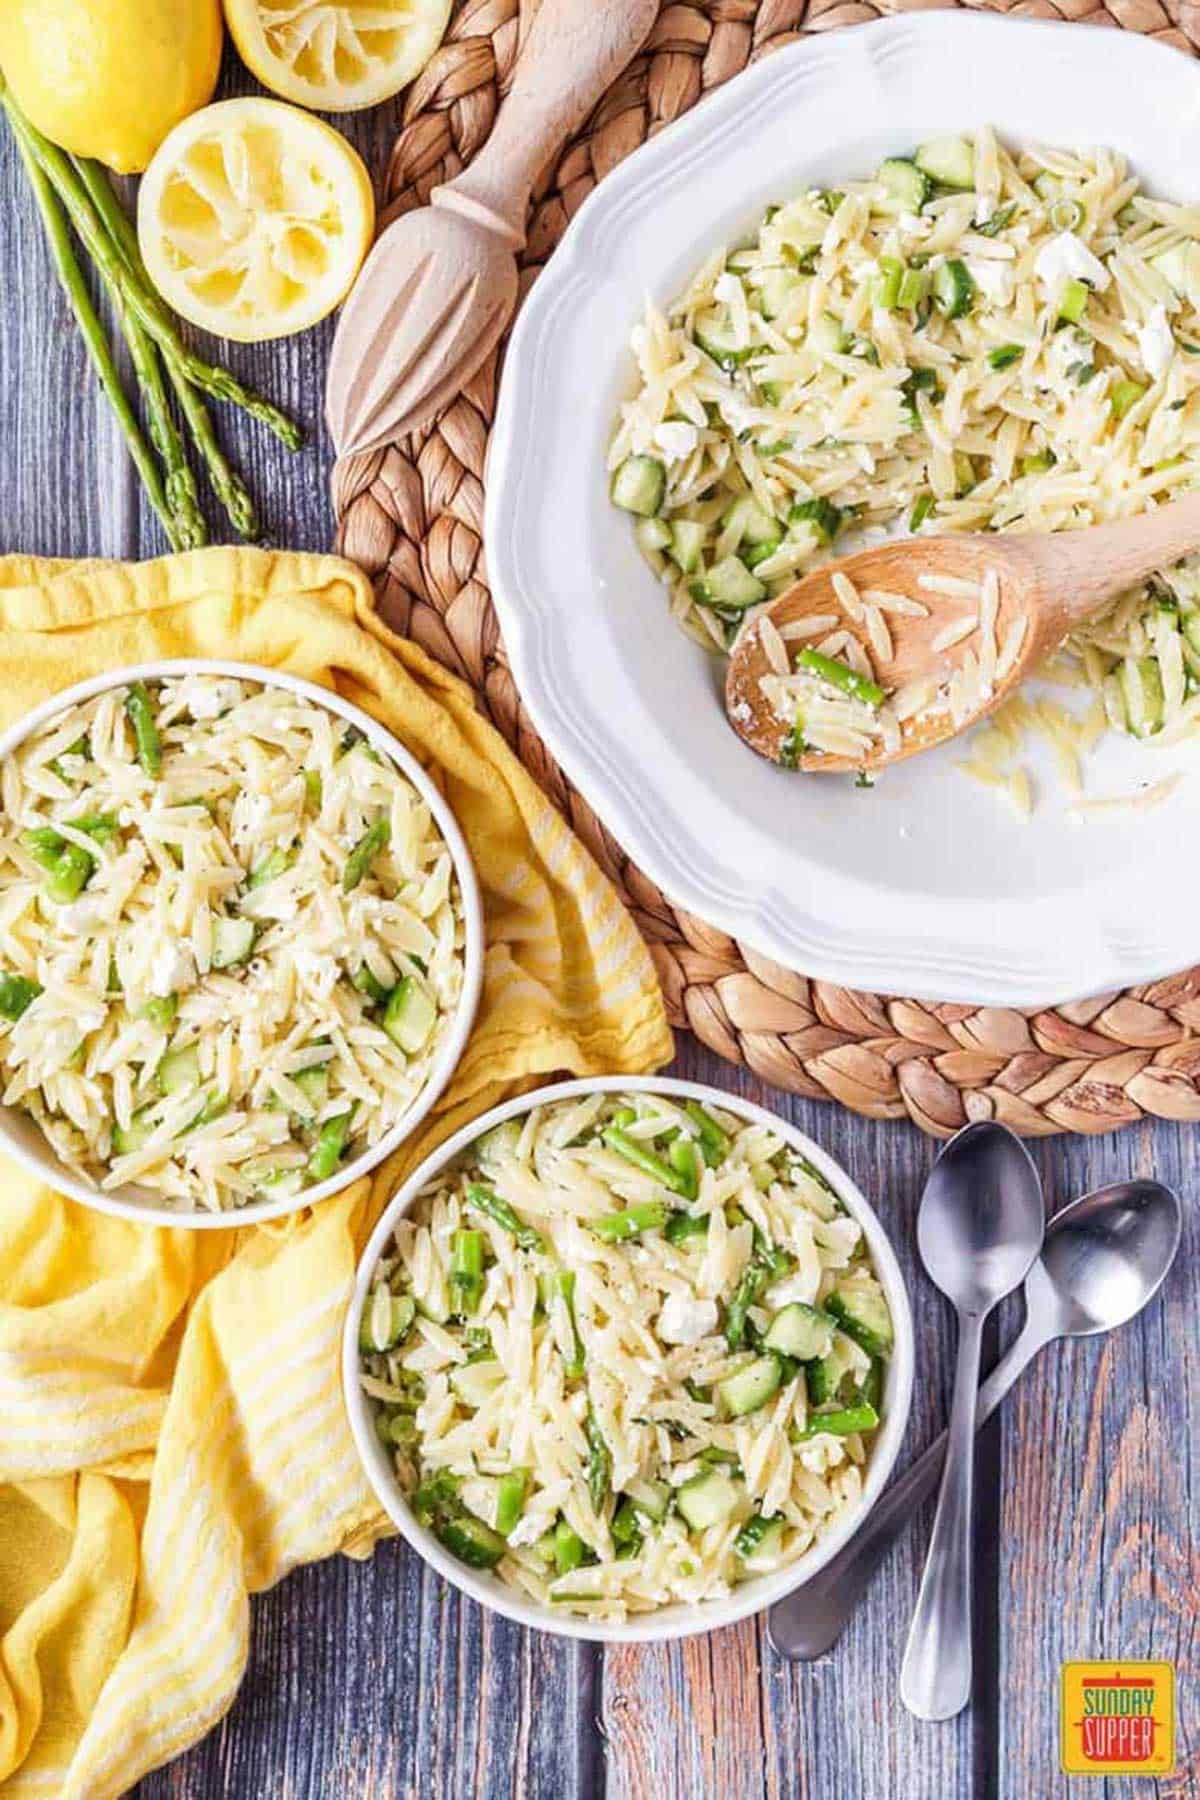 Two bowls of Lemon Orzo Pasta Salad next to a deep dish of pasta salad with a wooden serving spoon